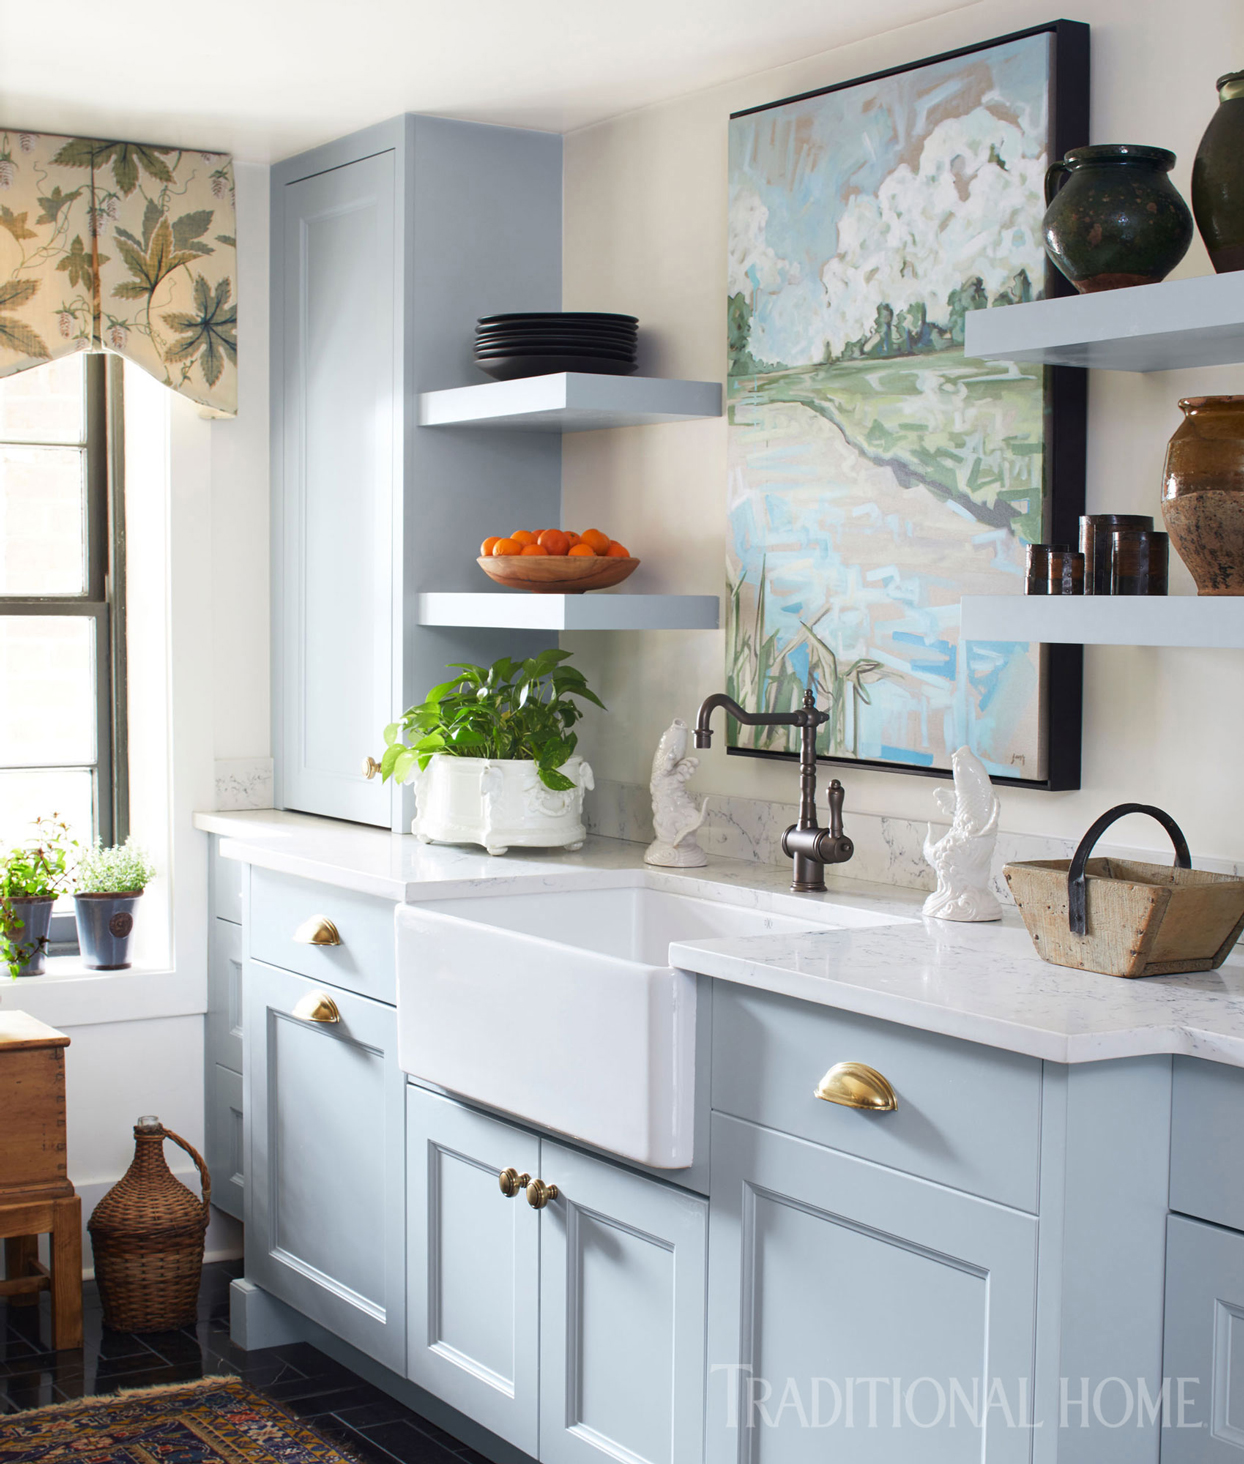 blue cabinets and sink